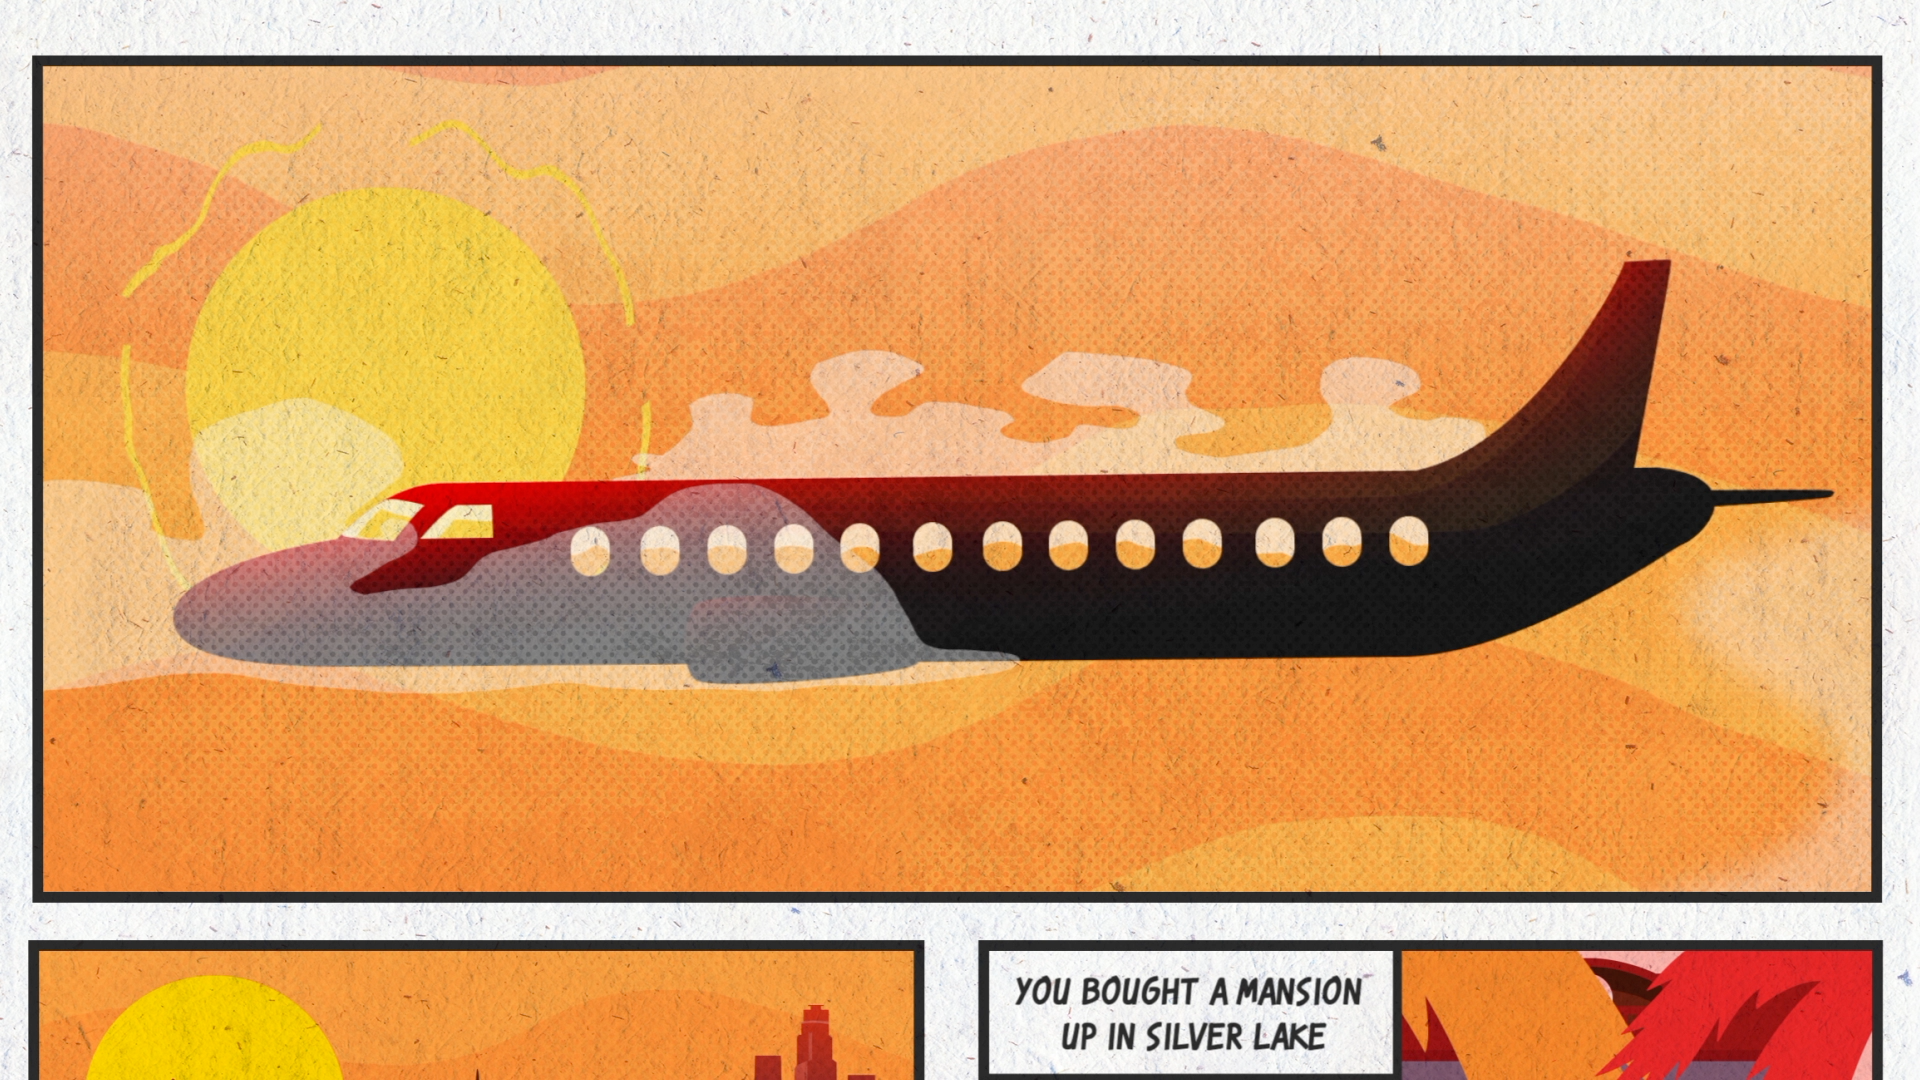 Up in Silver Lake Airplane.png